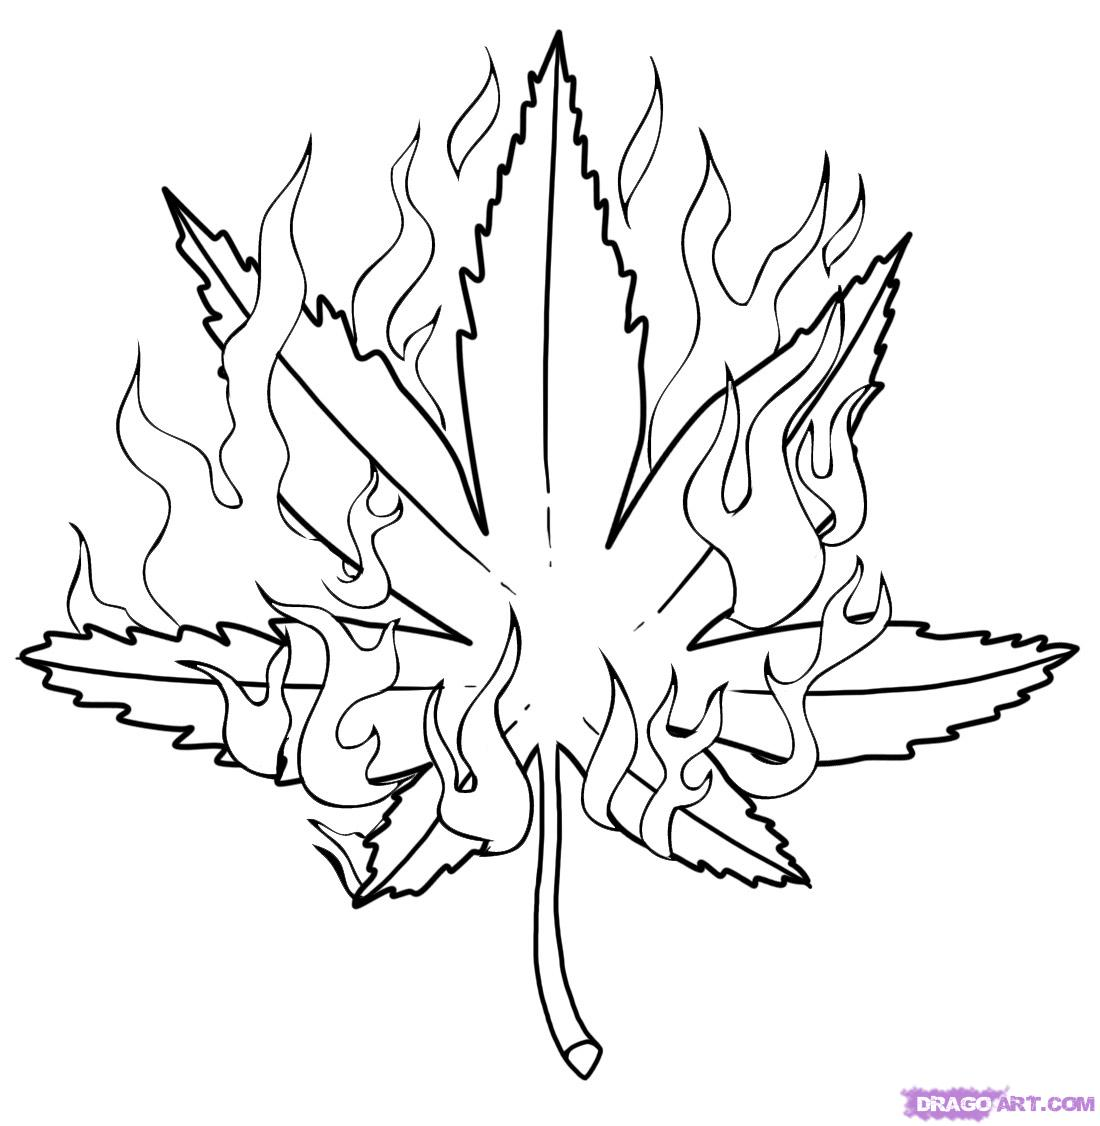 1100x1126 Dining How To Draw A Pot Leaf Step How To Draw A Pot Step By Pop